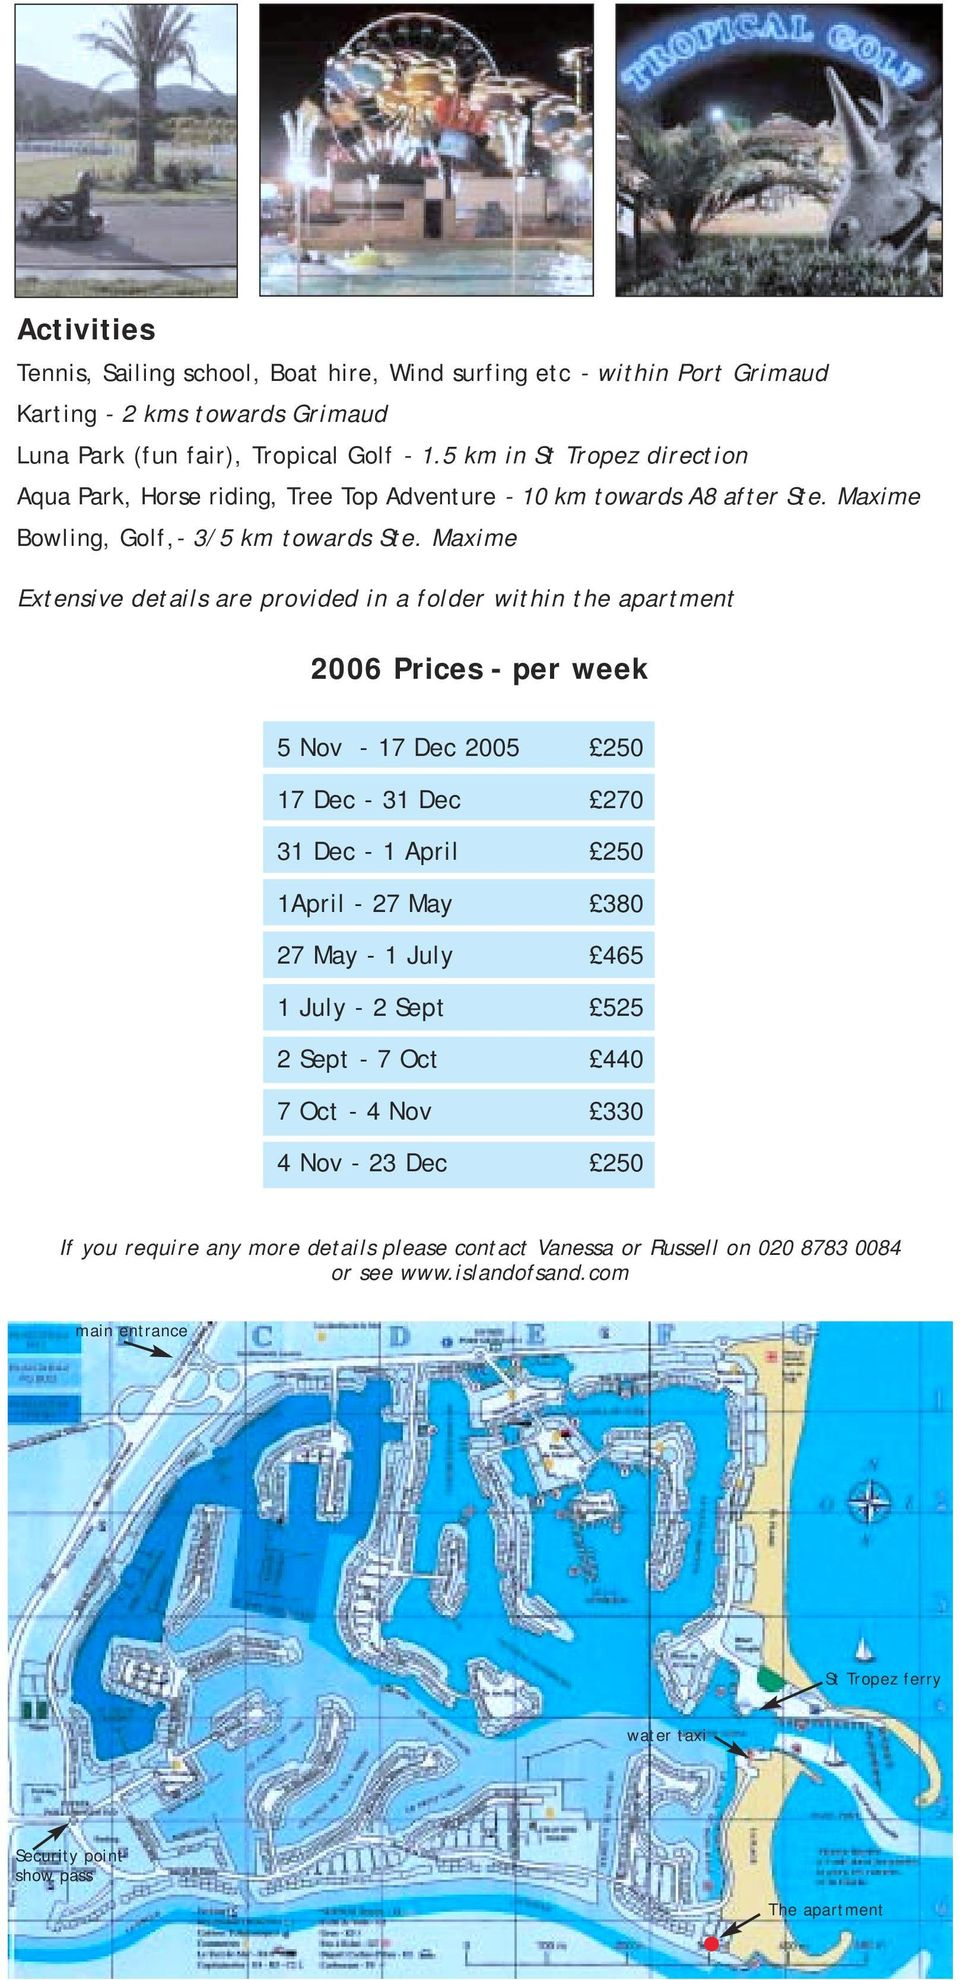 Maxime Extensive details are provided in a folder within the apartment 2006 Prices - per week 5 Nov - 17 Dec 2005 250 17 Dec - 31 Dec 270 31 Dec - 1 April 250 1April - 27 May 380 27 May - 1